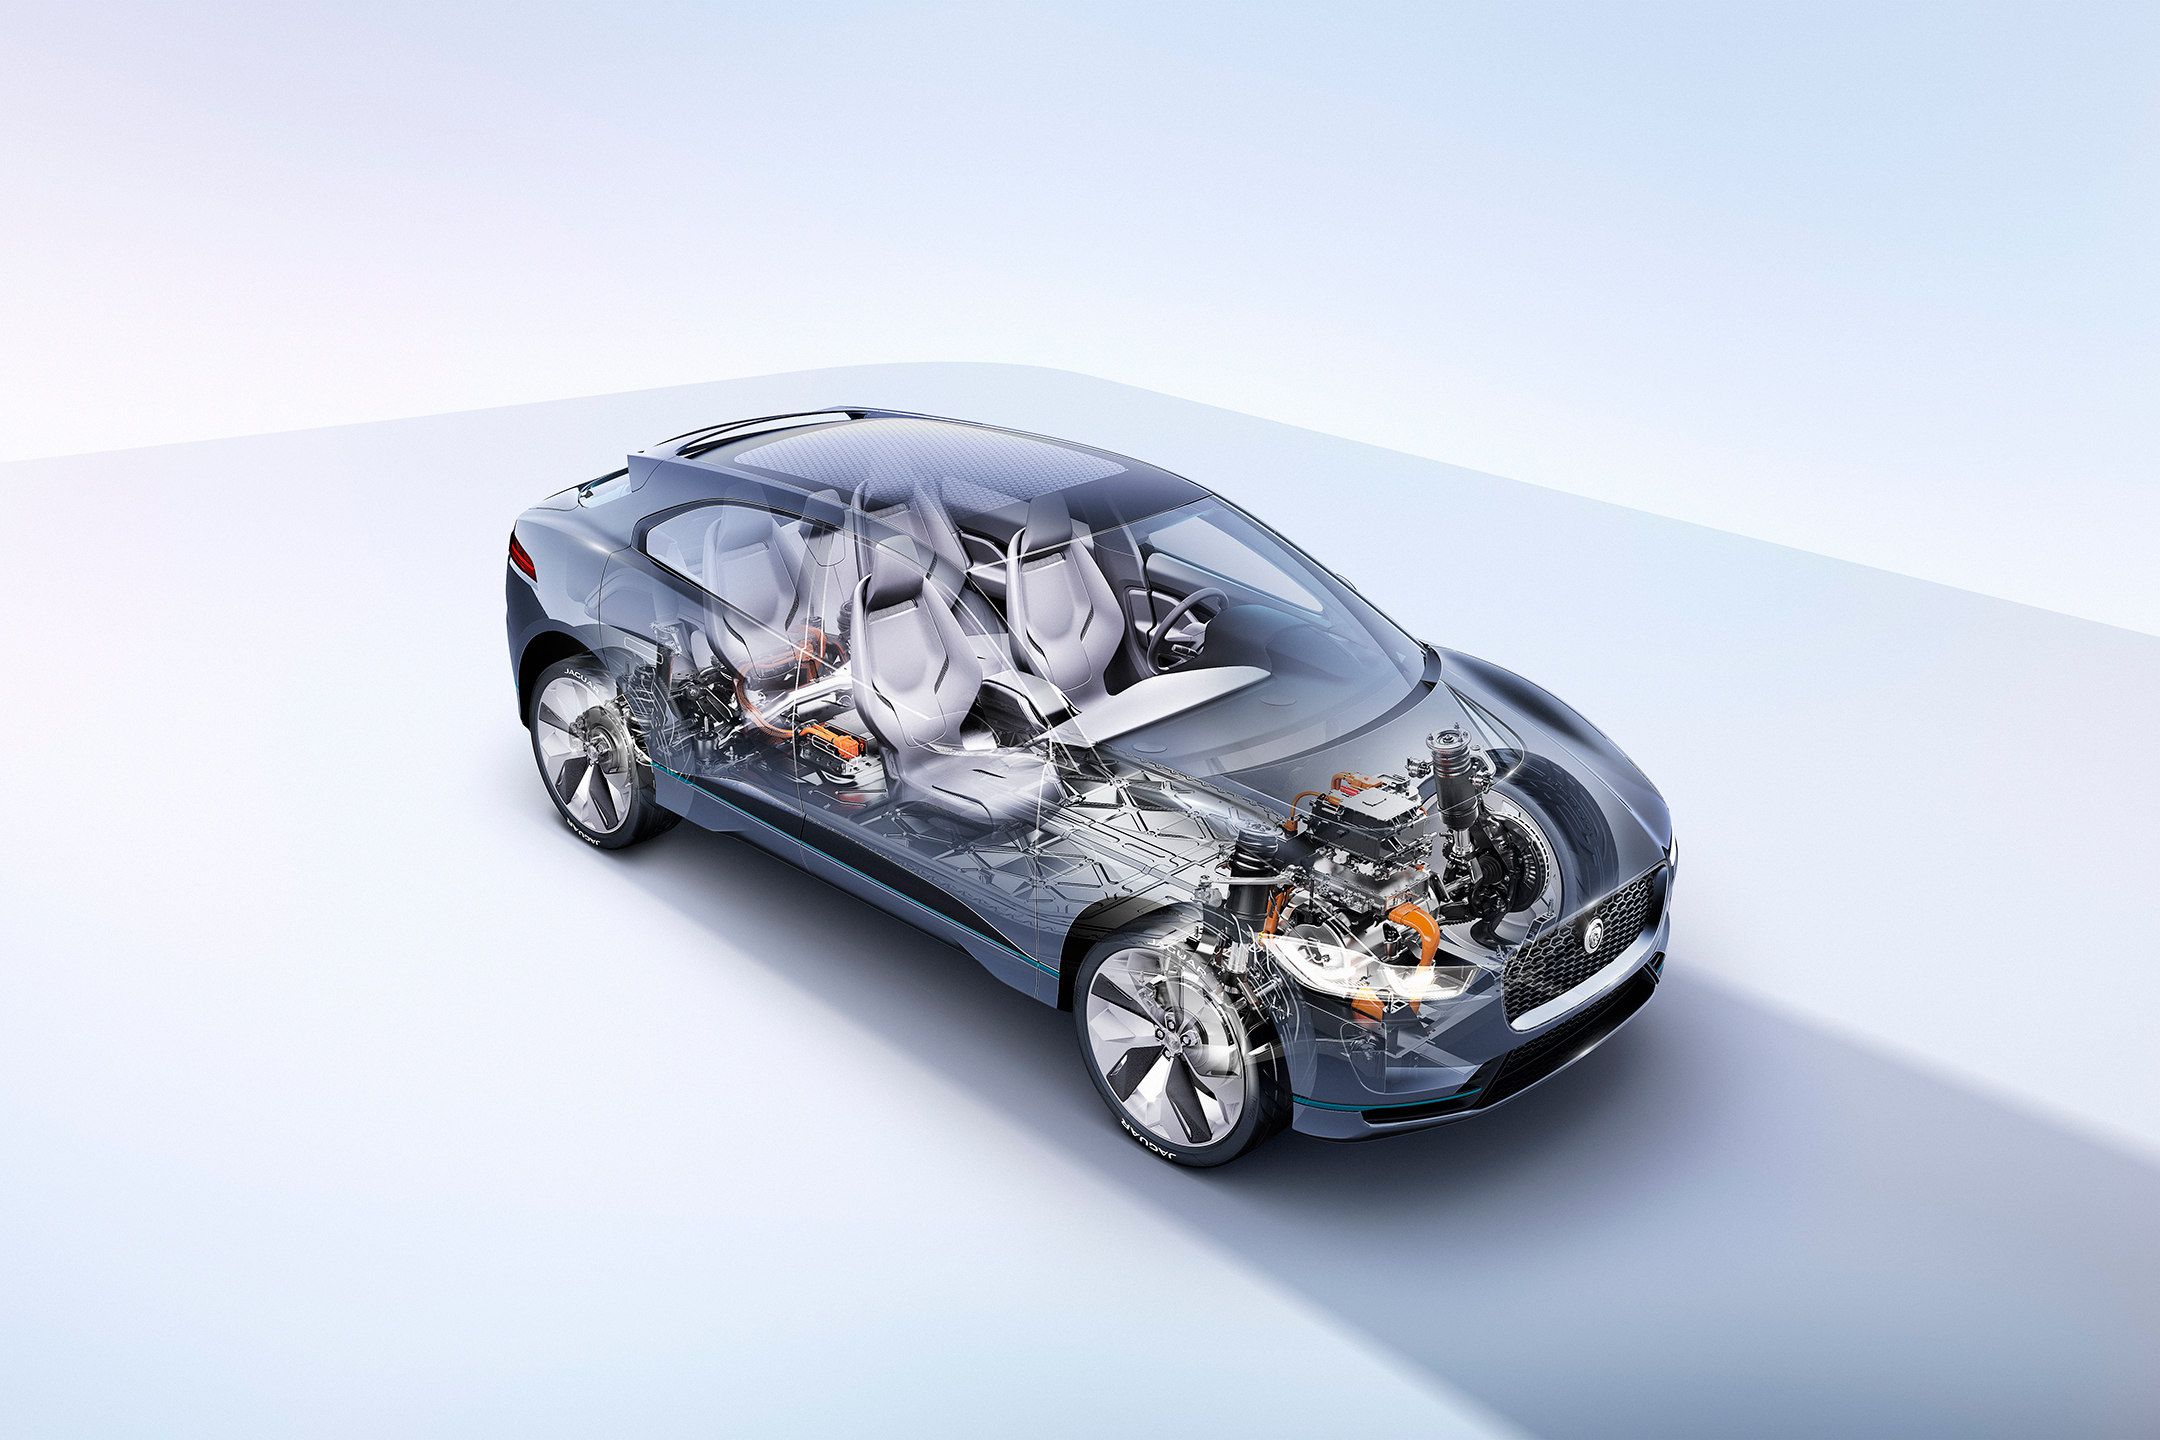 Jaguar I-PACE Concept - 2016 - powertrain - engine / moteur